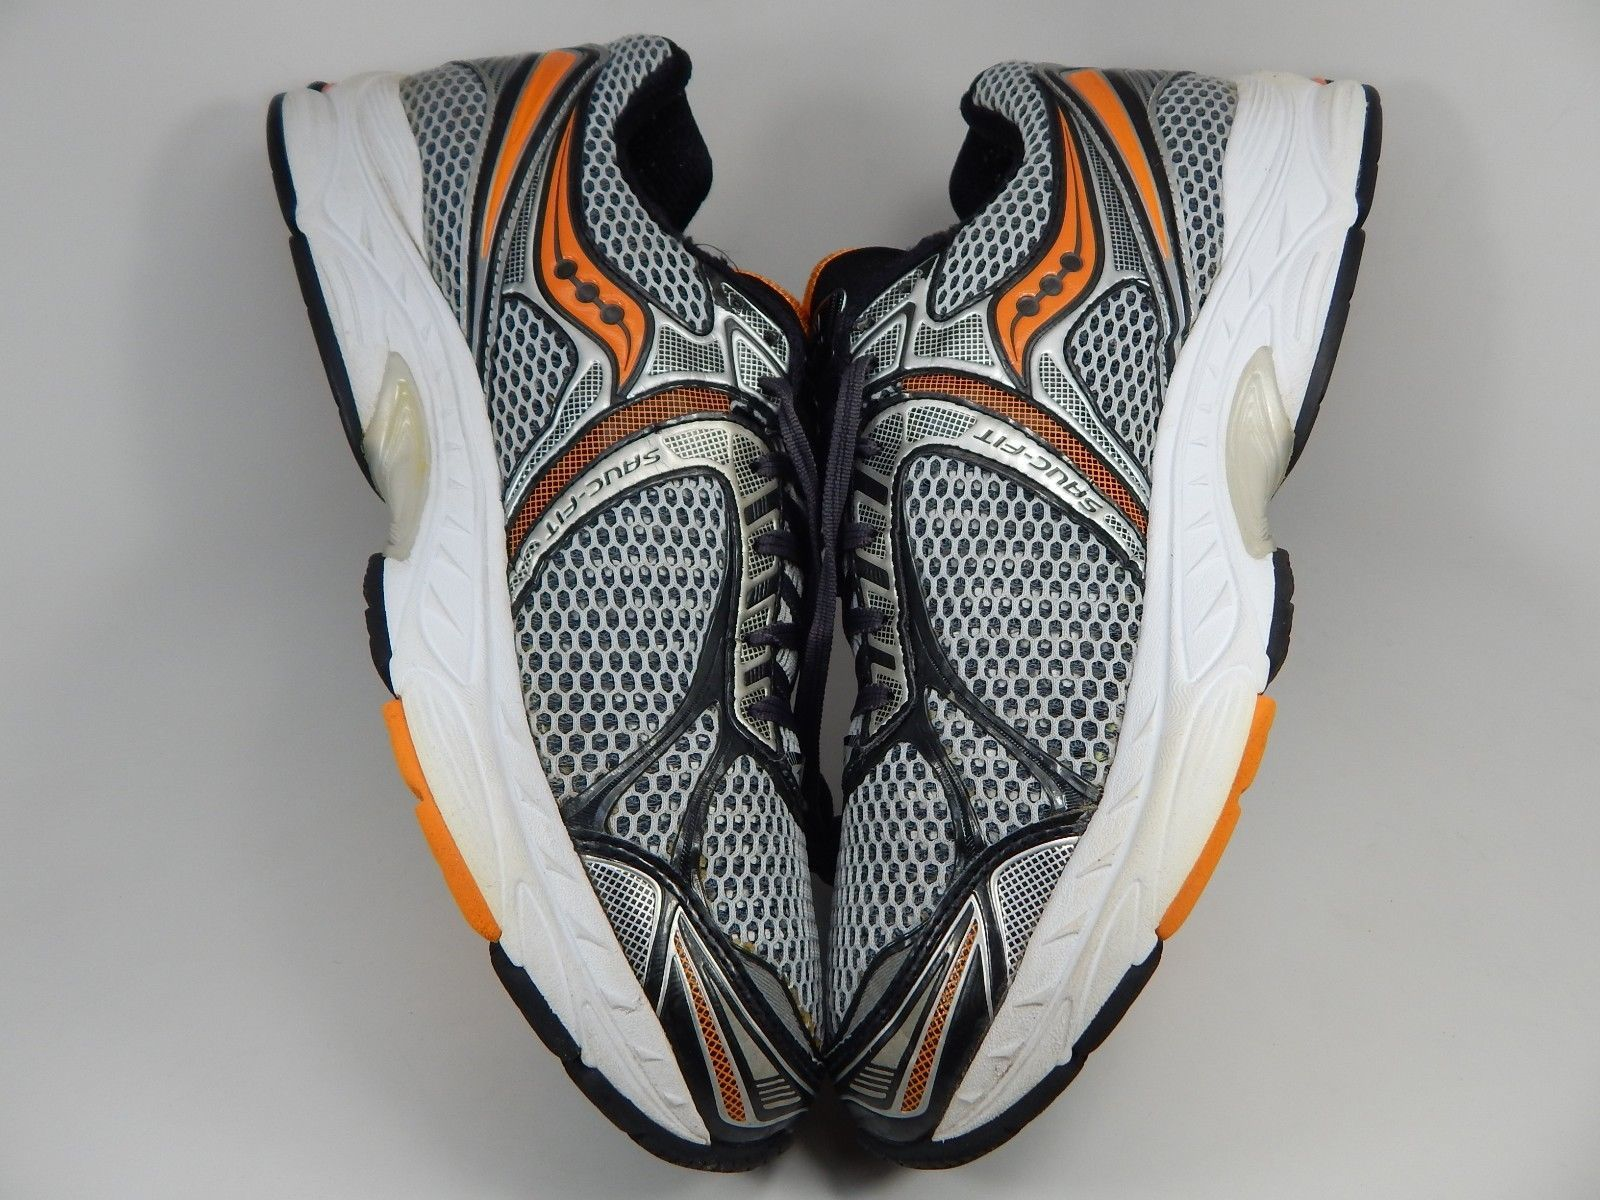 e760c9ac220 Saucony Triumph 9 Running Shoes Men s Size US 12.5 M (D) EU 47 Gray